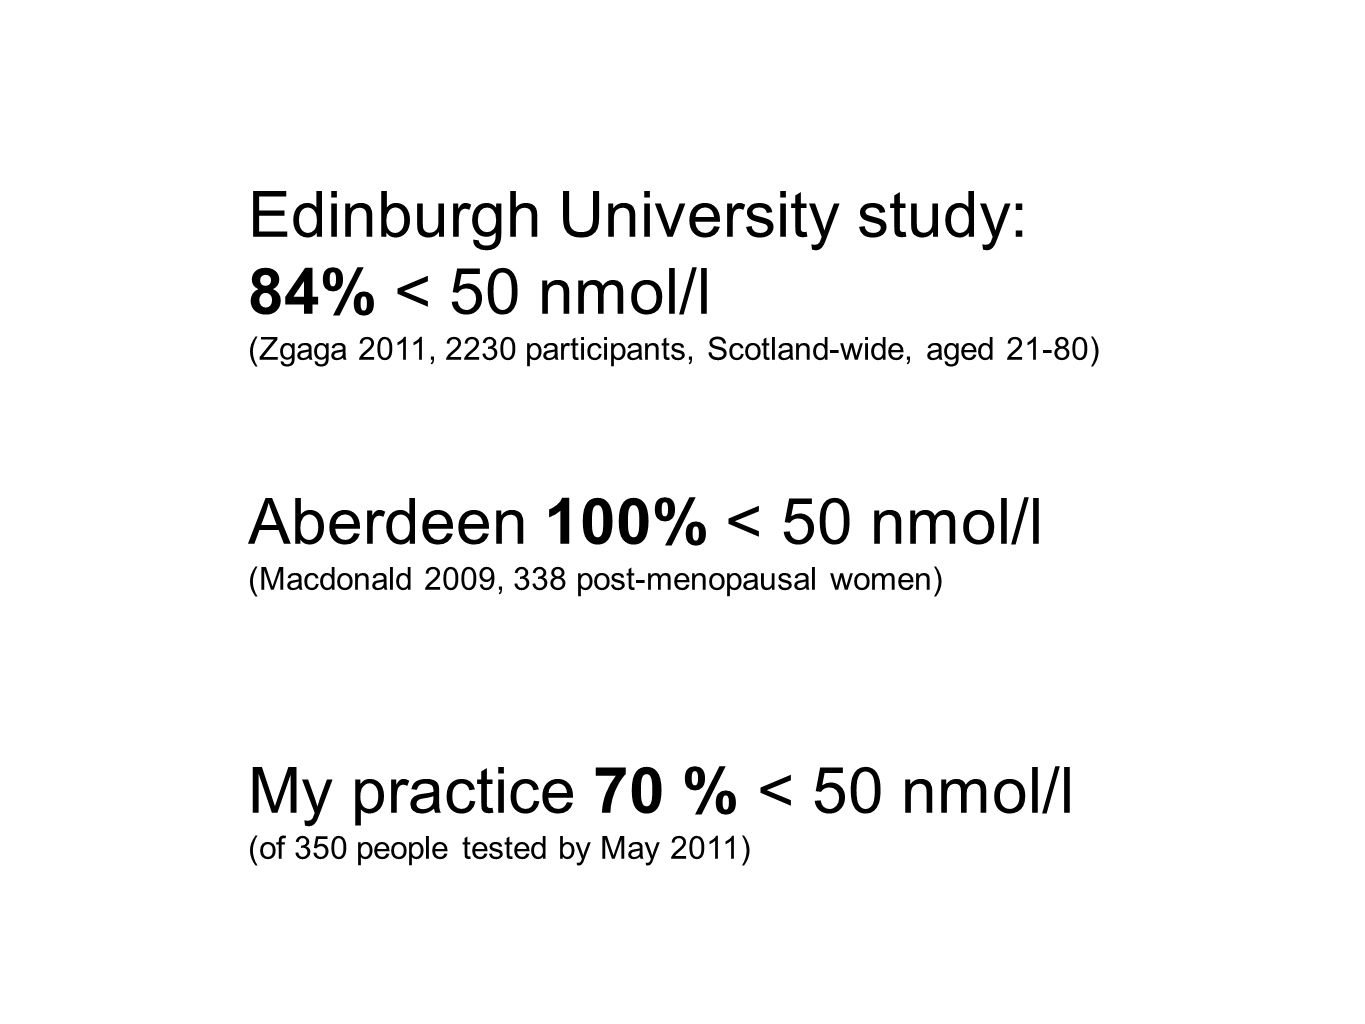 Edinburgh University study: 84% < 50 nmol/l (Zgaga 2011, 2230 participants, Scotland-wide, aged 21-80) Aberdeen 100% < 50 nmol/l (Macdonald 2009, 338 post-menopausal women) My practice 70 % < 50 nmol/l (of 350 people tested by May 2011)